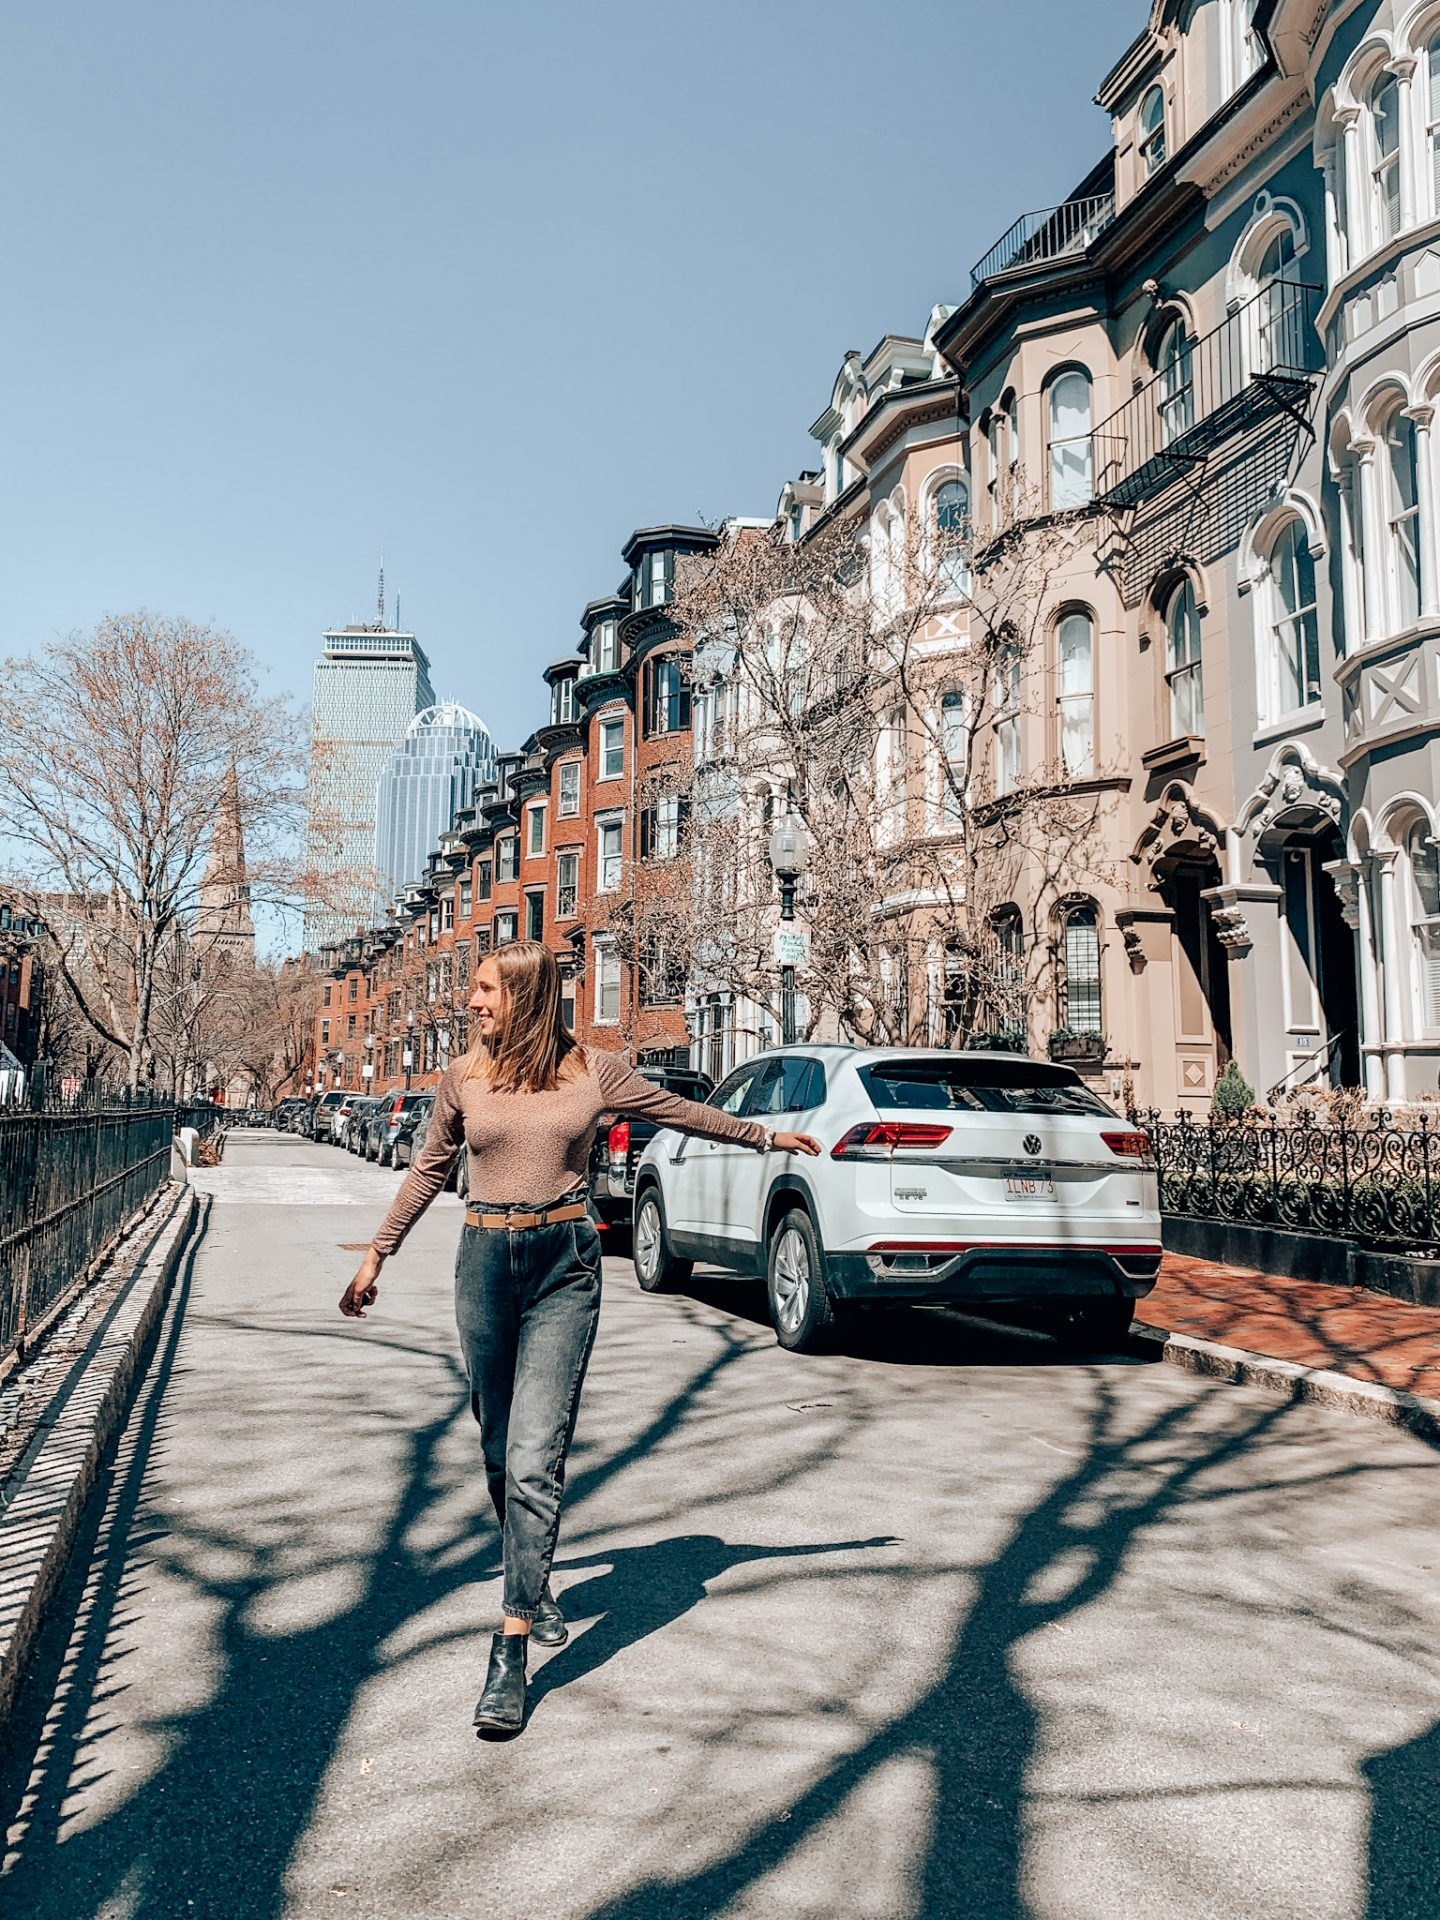 The South End is one of the most Instagrammable places in Boston